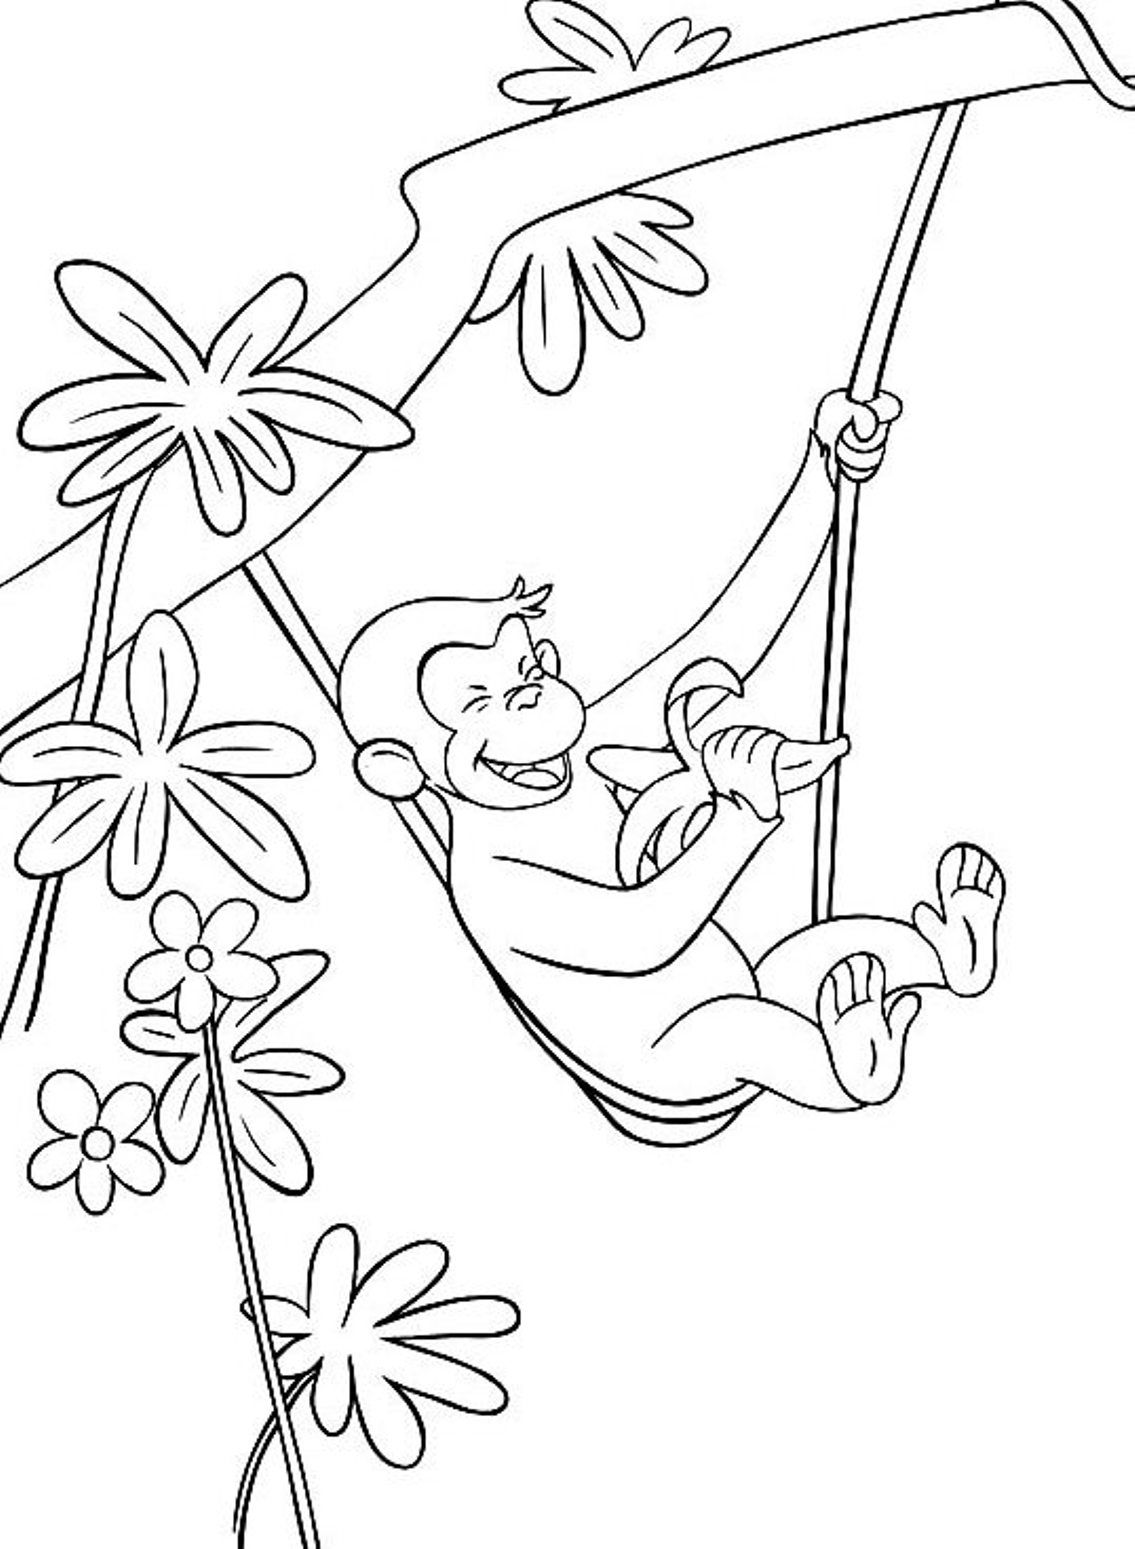 Quilling Ideas Curious George Coloring Pages Young Adults Free Colouring Mandala Monkeys School